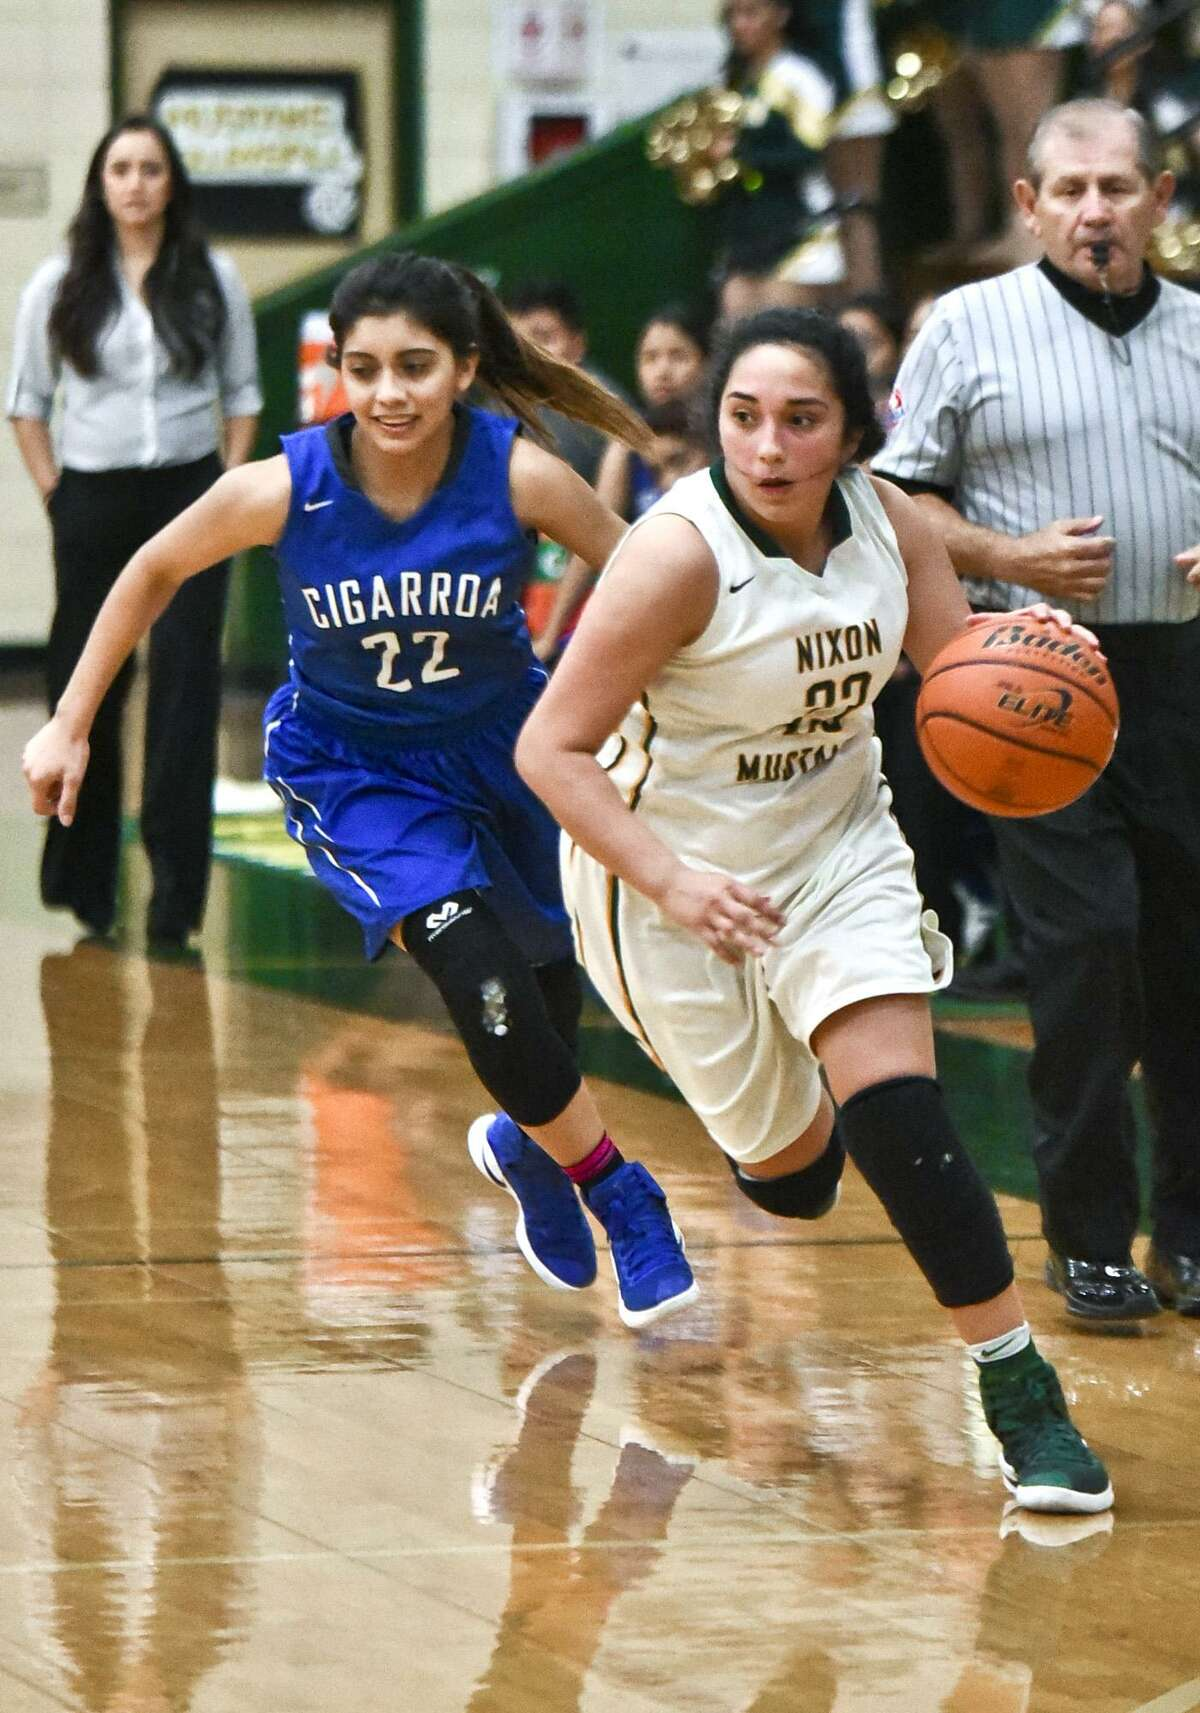 Cigarroa High School Larissa Palomares chases after Nixon High School Kassy Lazcano on Friday night during a game at Nixon High School.